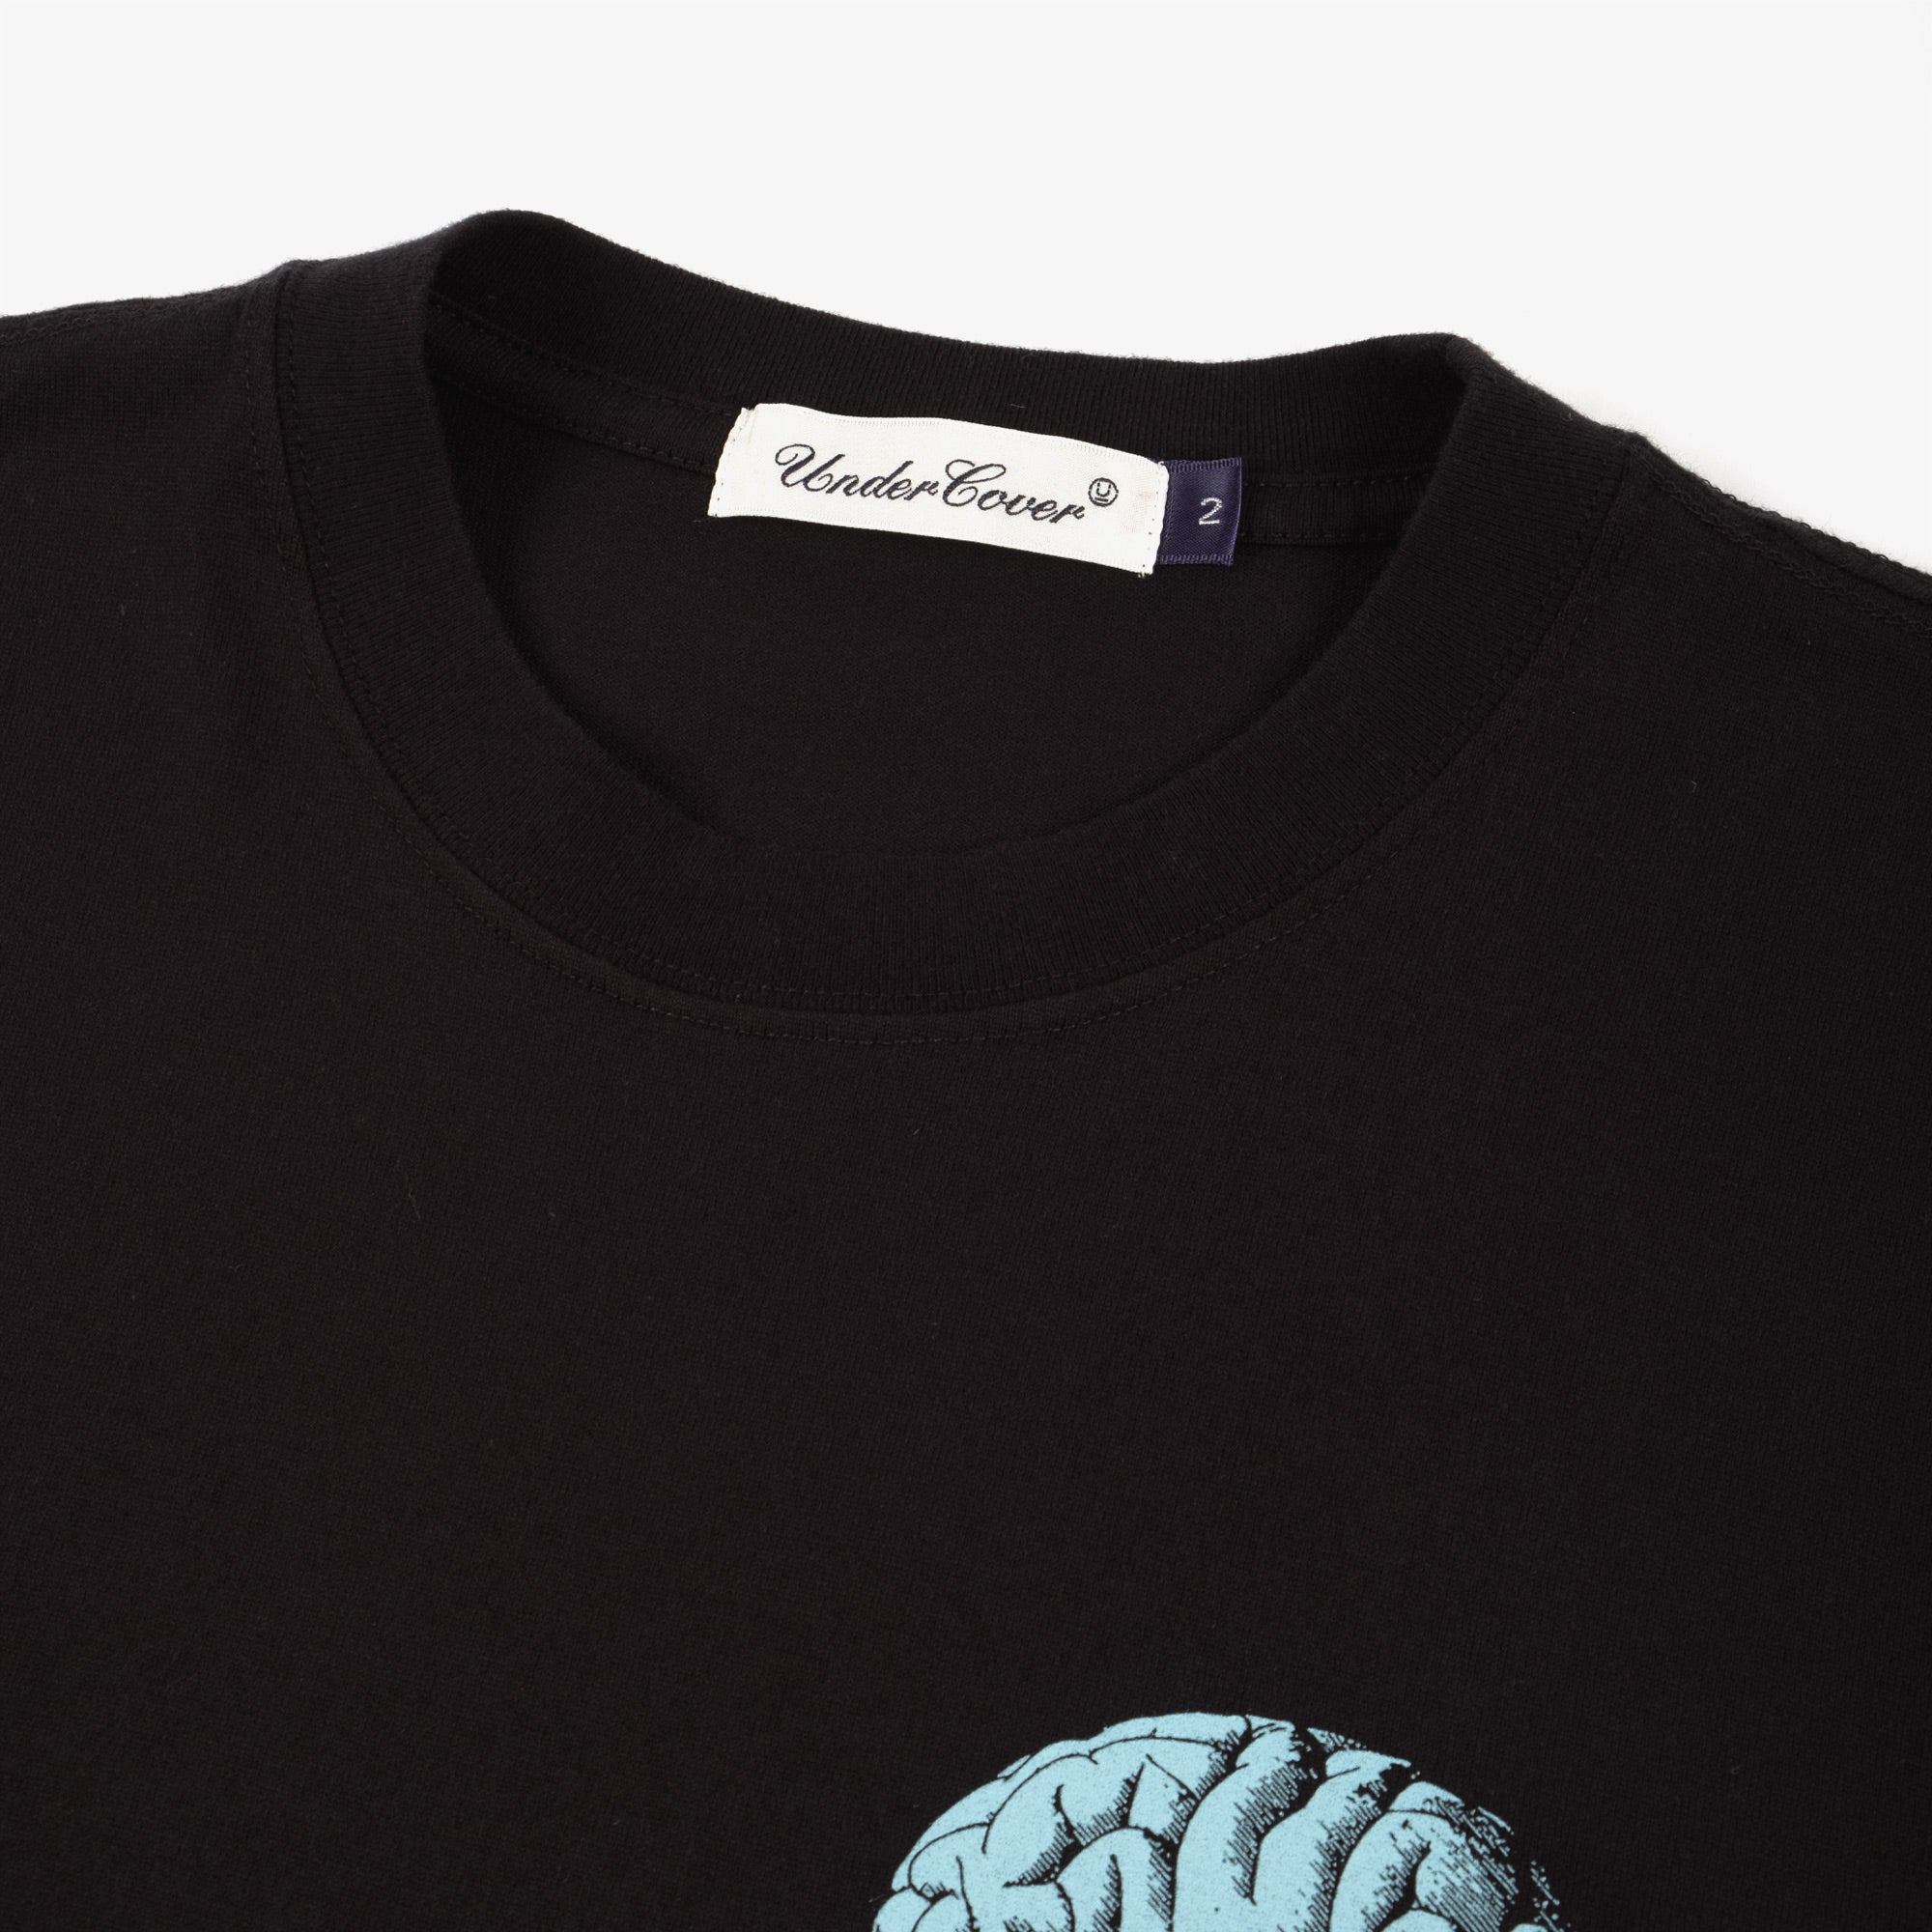 Undercover Brains Tee UC2A4892-1 - Black 3